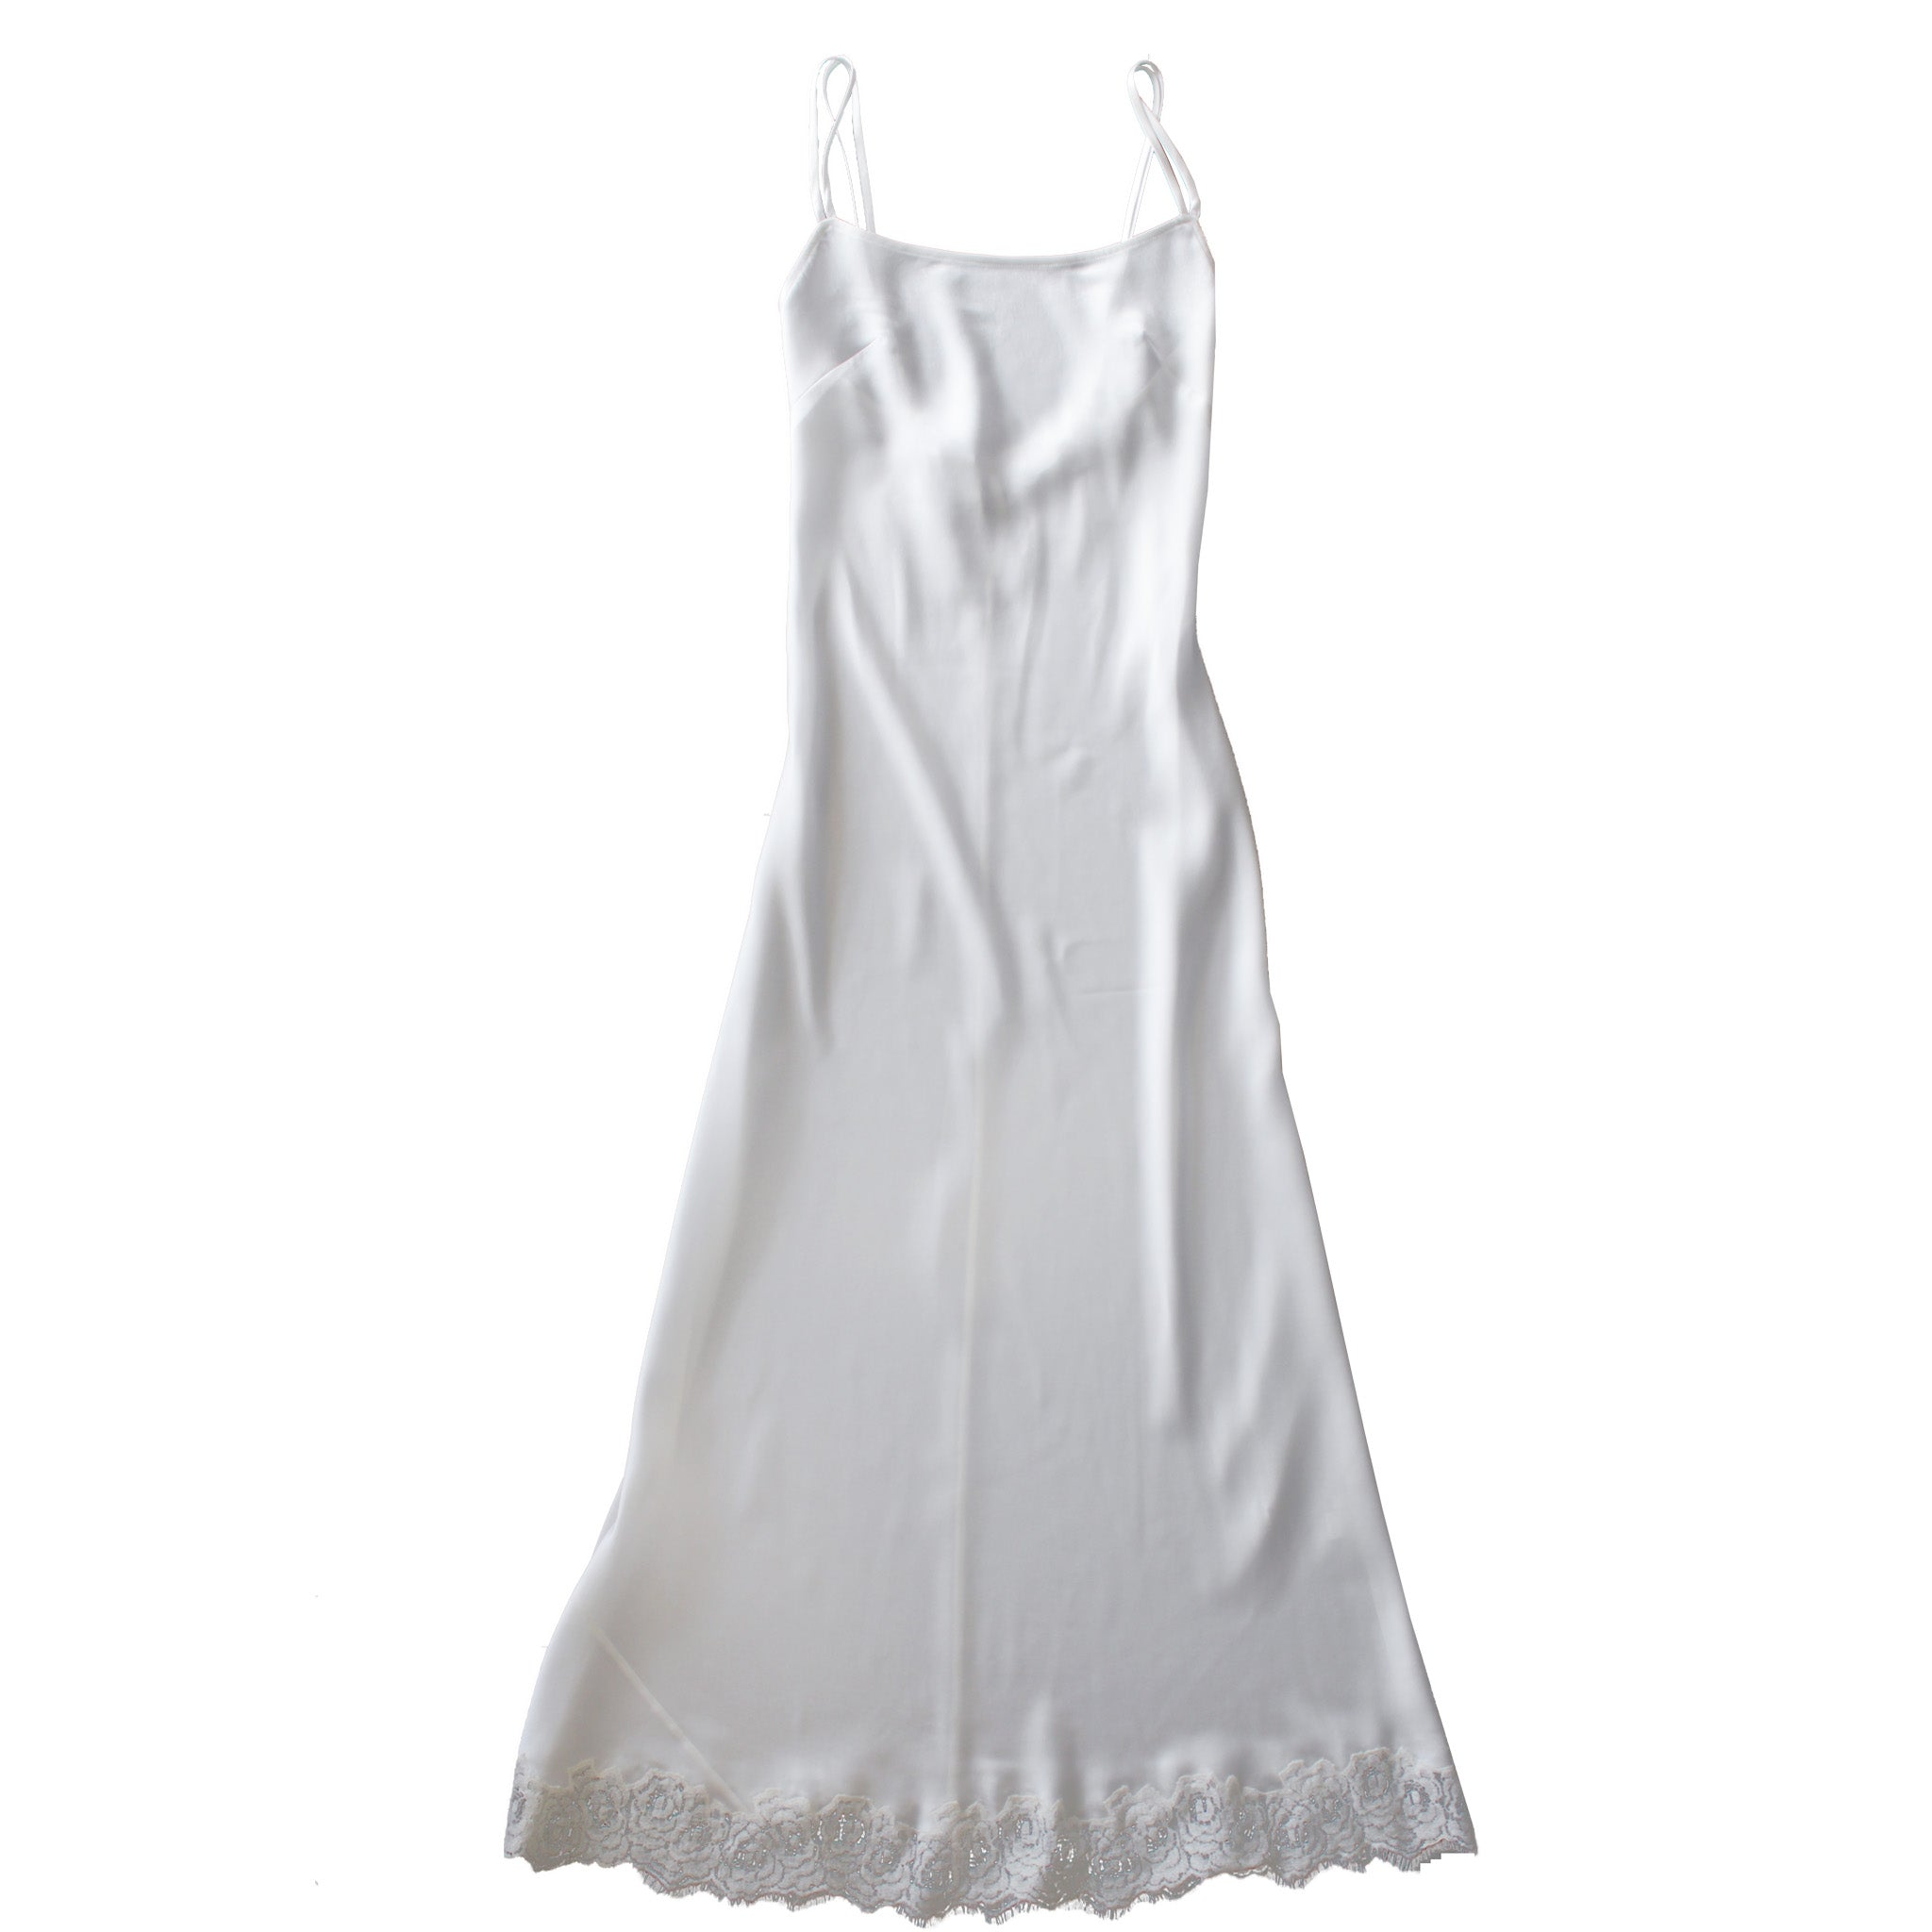 Juno Slip in Moonstone Silk Charmeuse with Lace